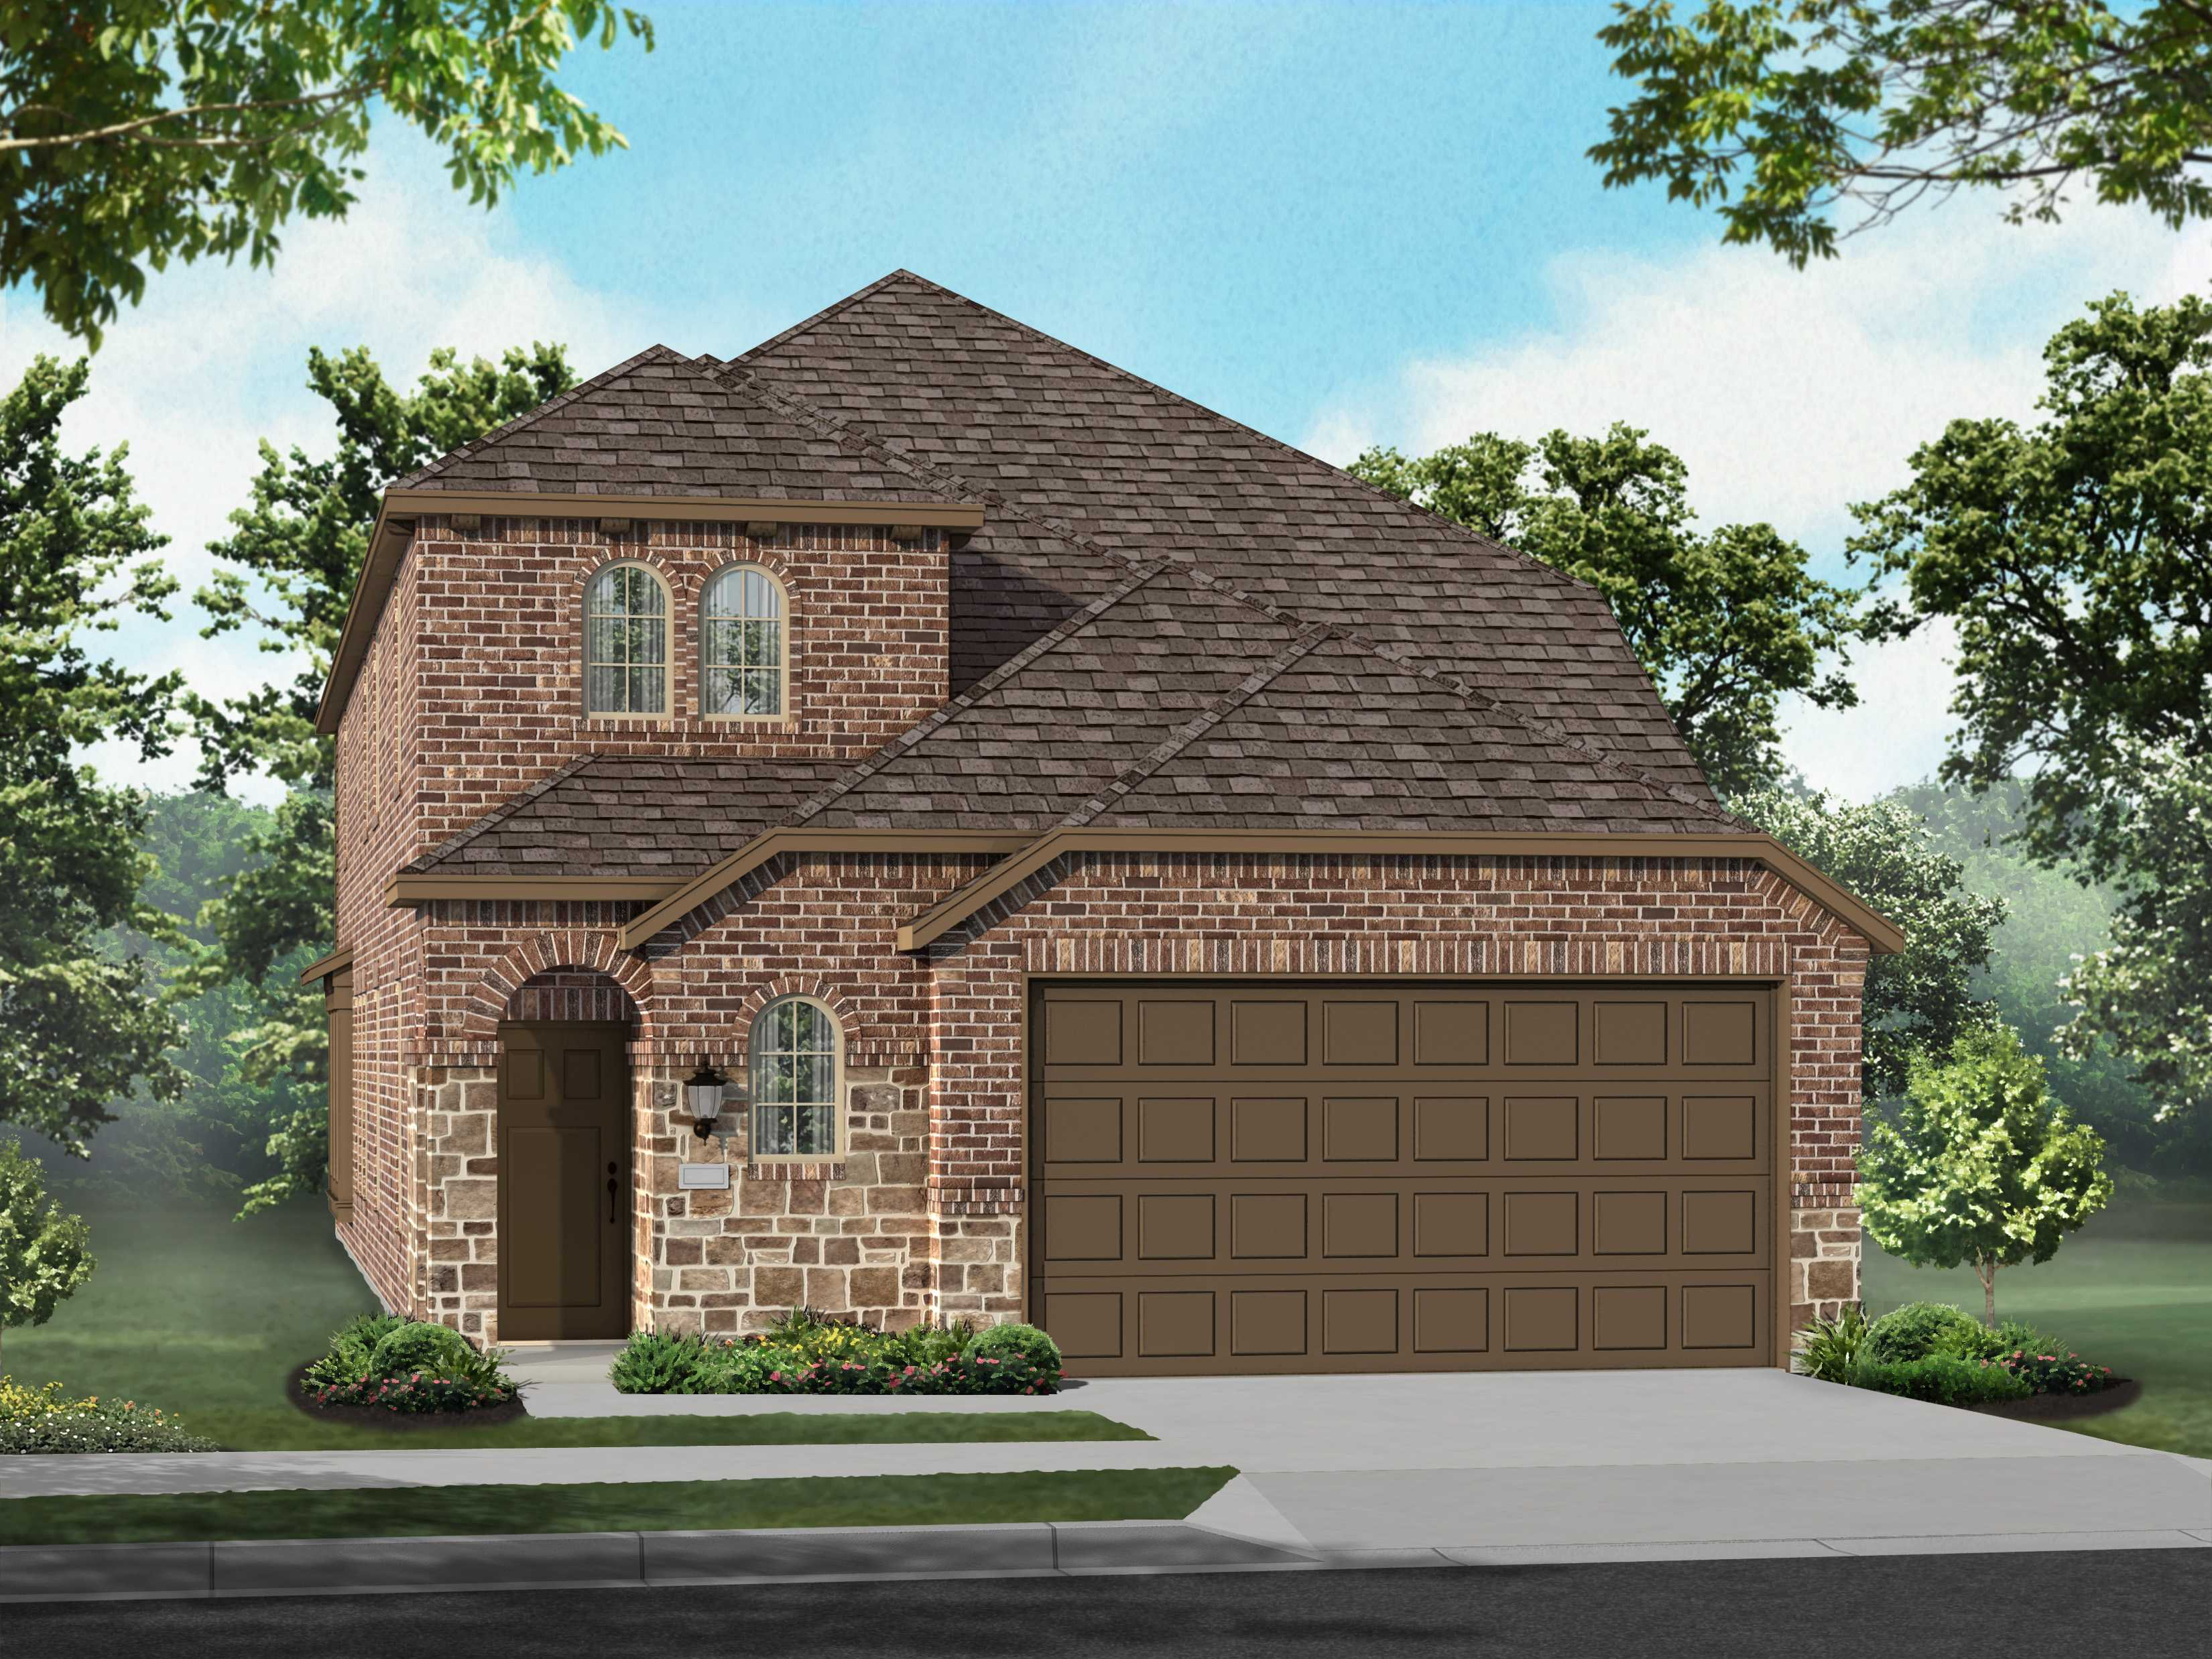 Highland Homes Houston TX Communities & Homes for Sale | NewHomeSource